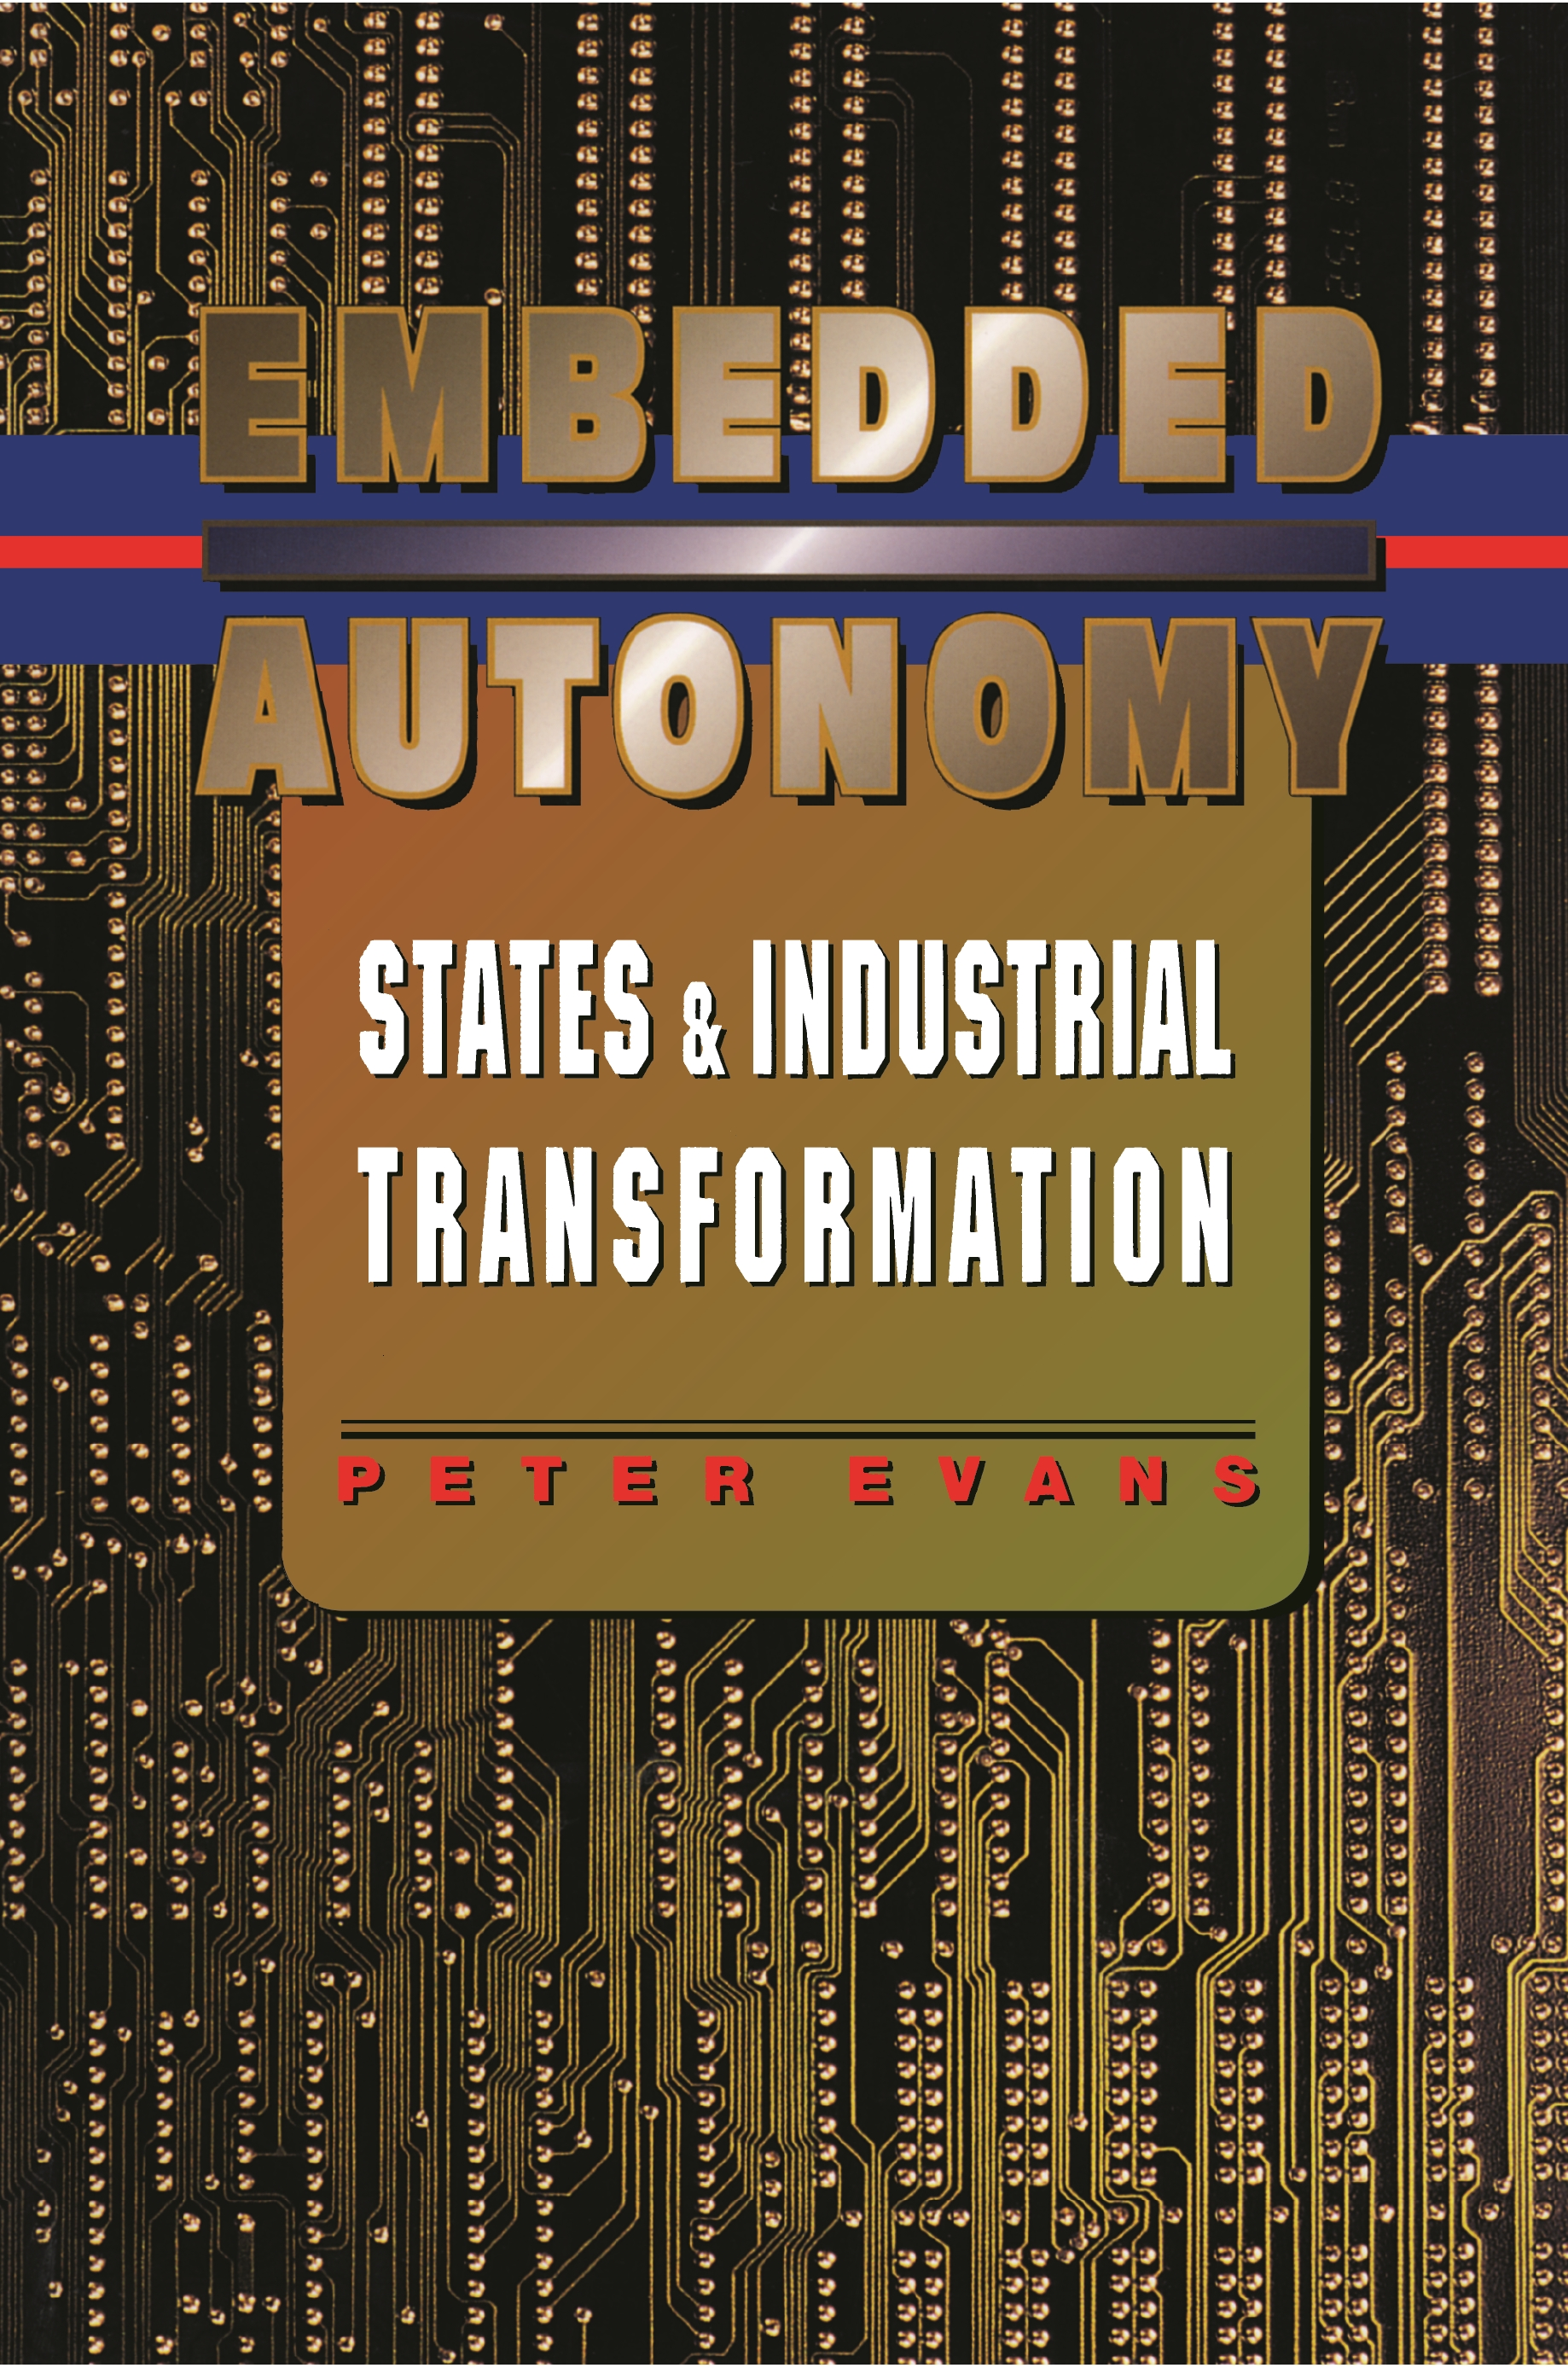 Embedded Autonomy States and Industrial Transformation